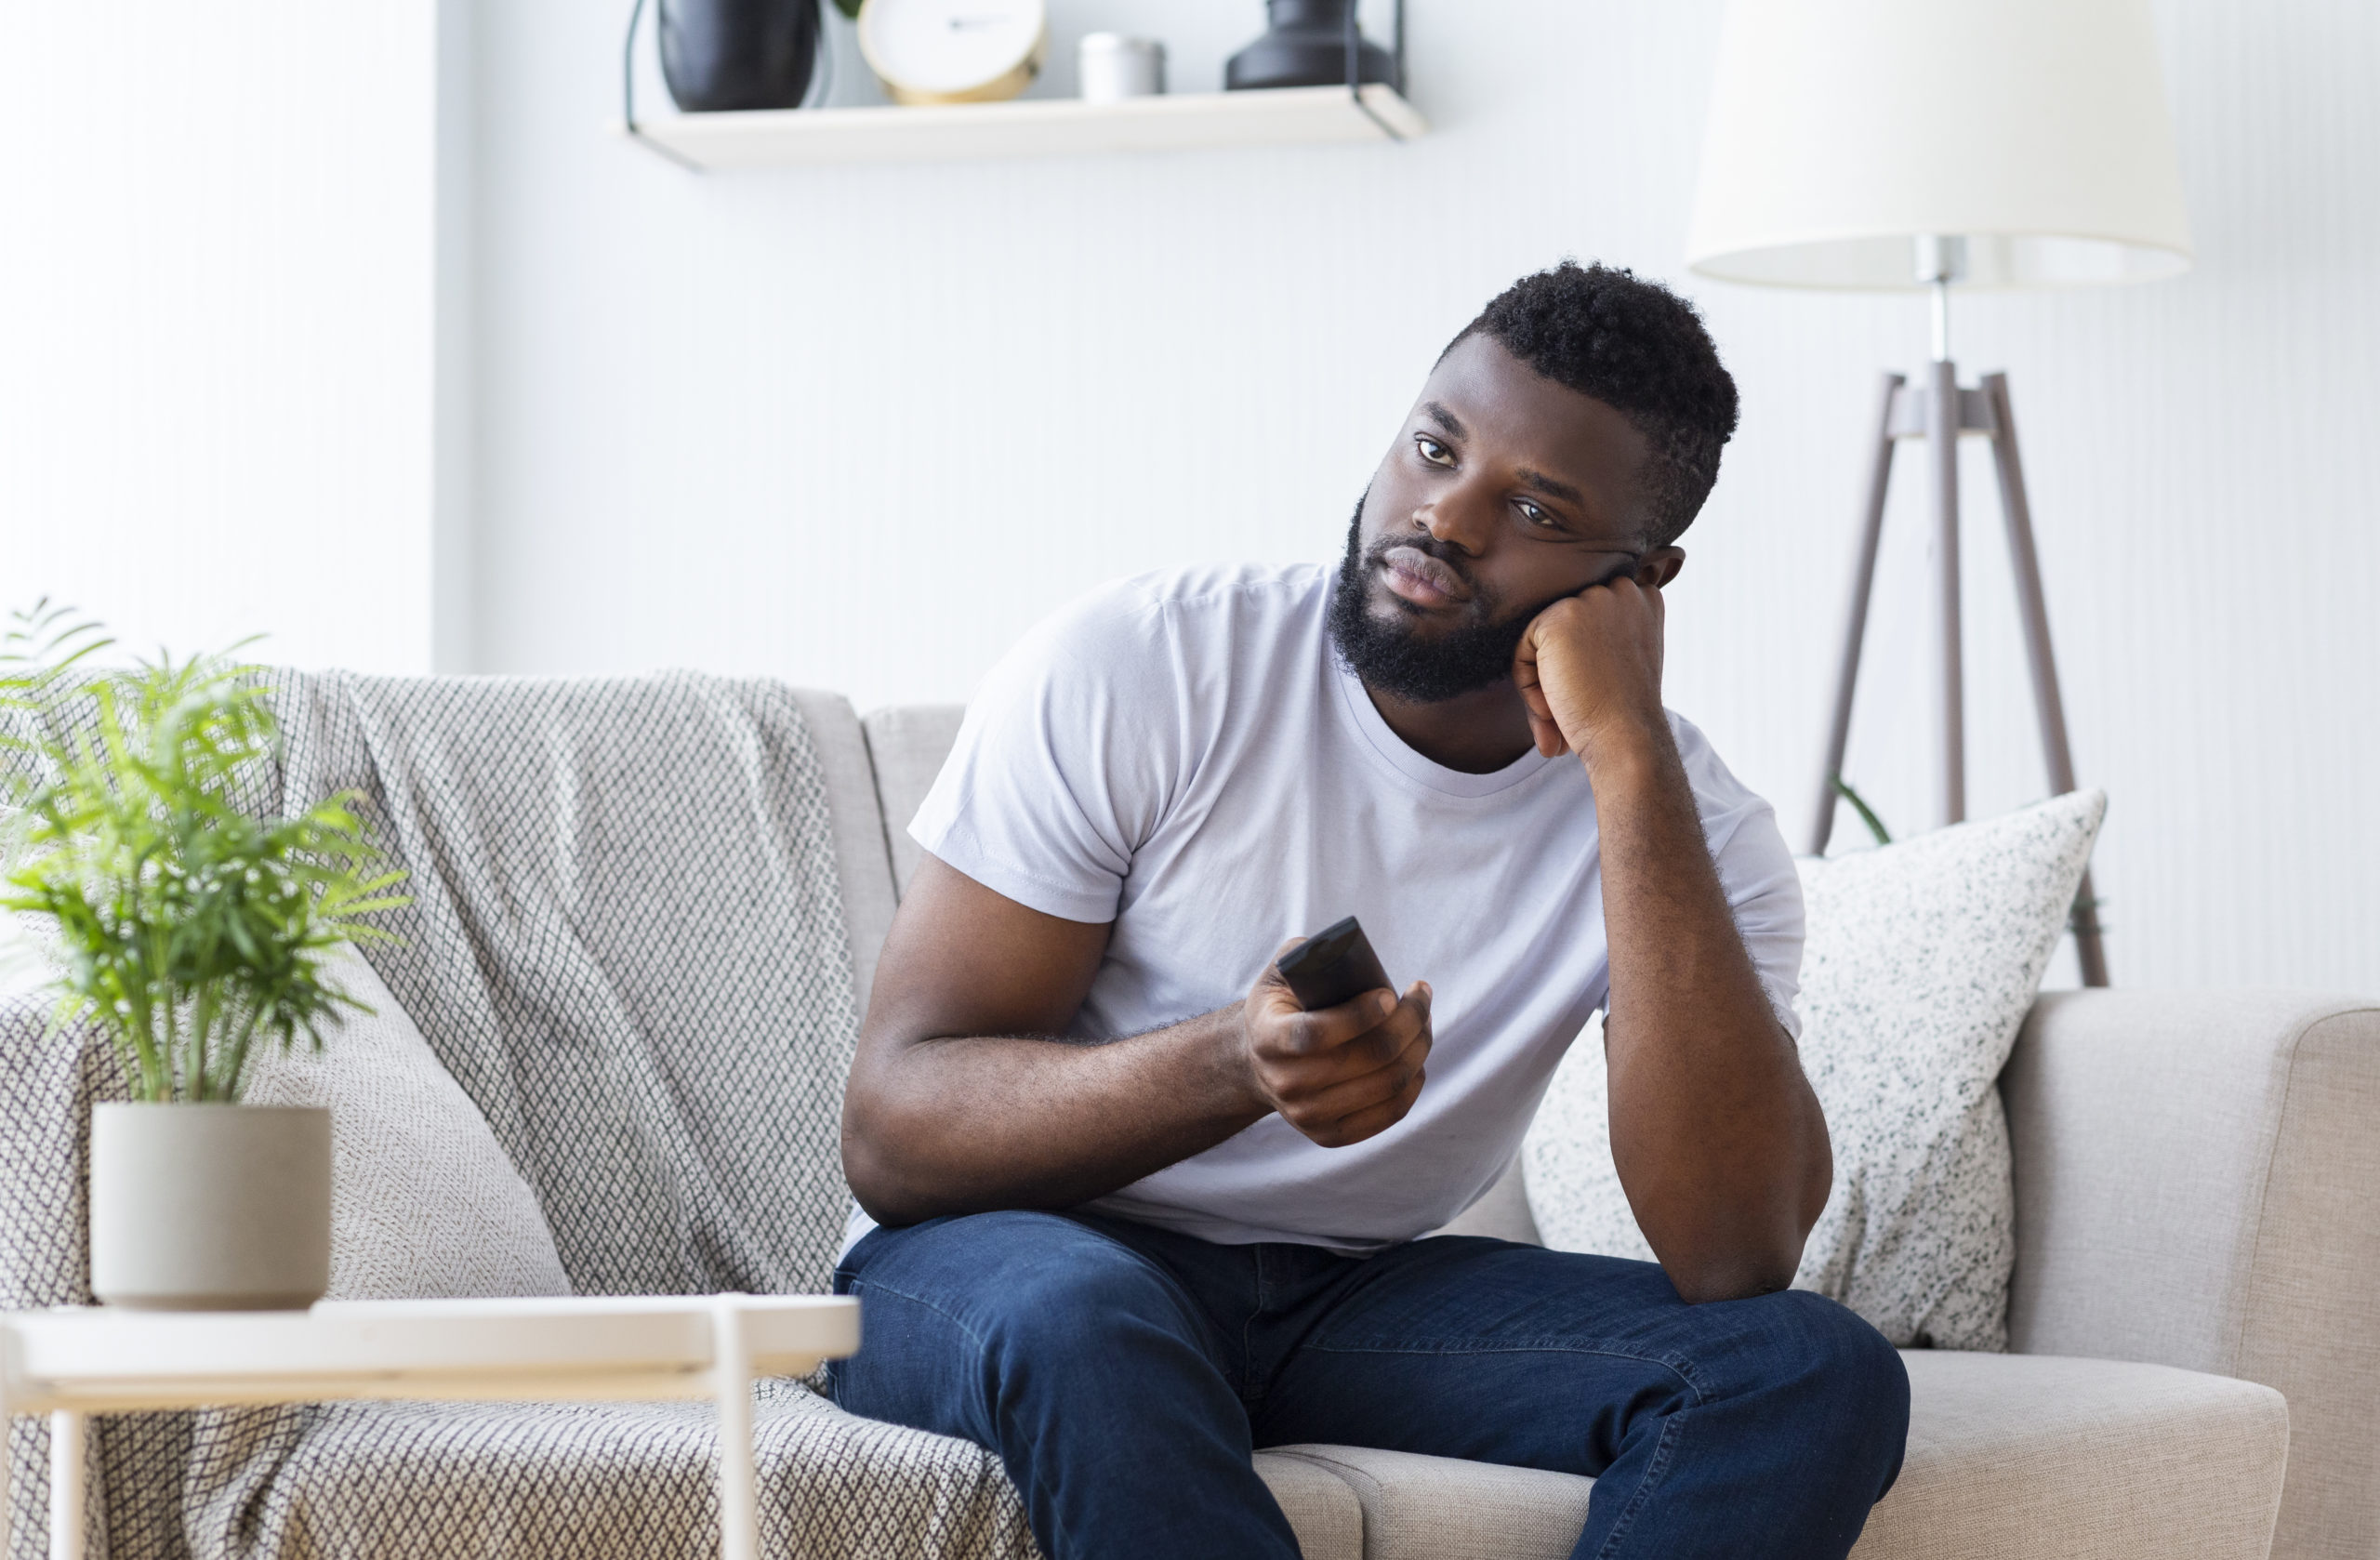 https://elements.envato.com/bored-african-guy-sitting-at-home-switching-tv-for-JDL625U